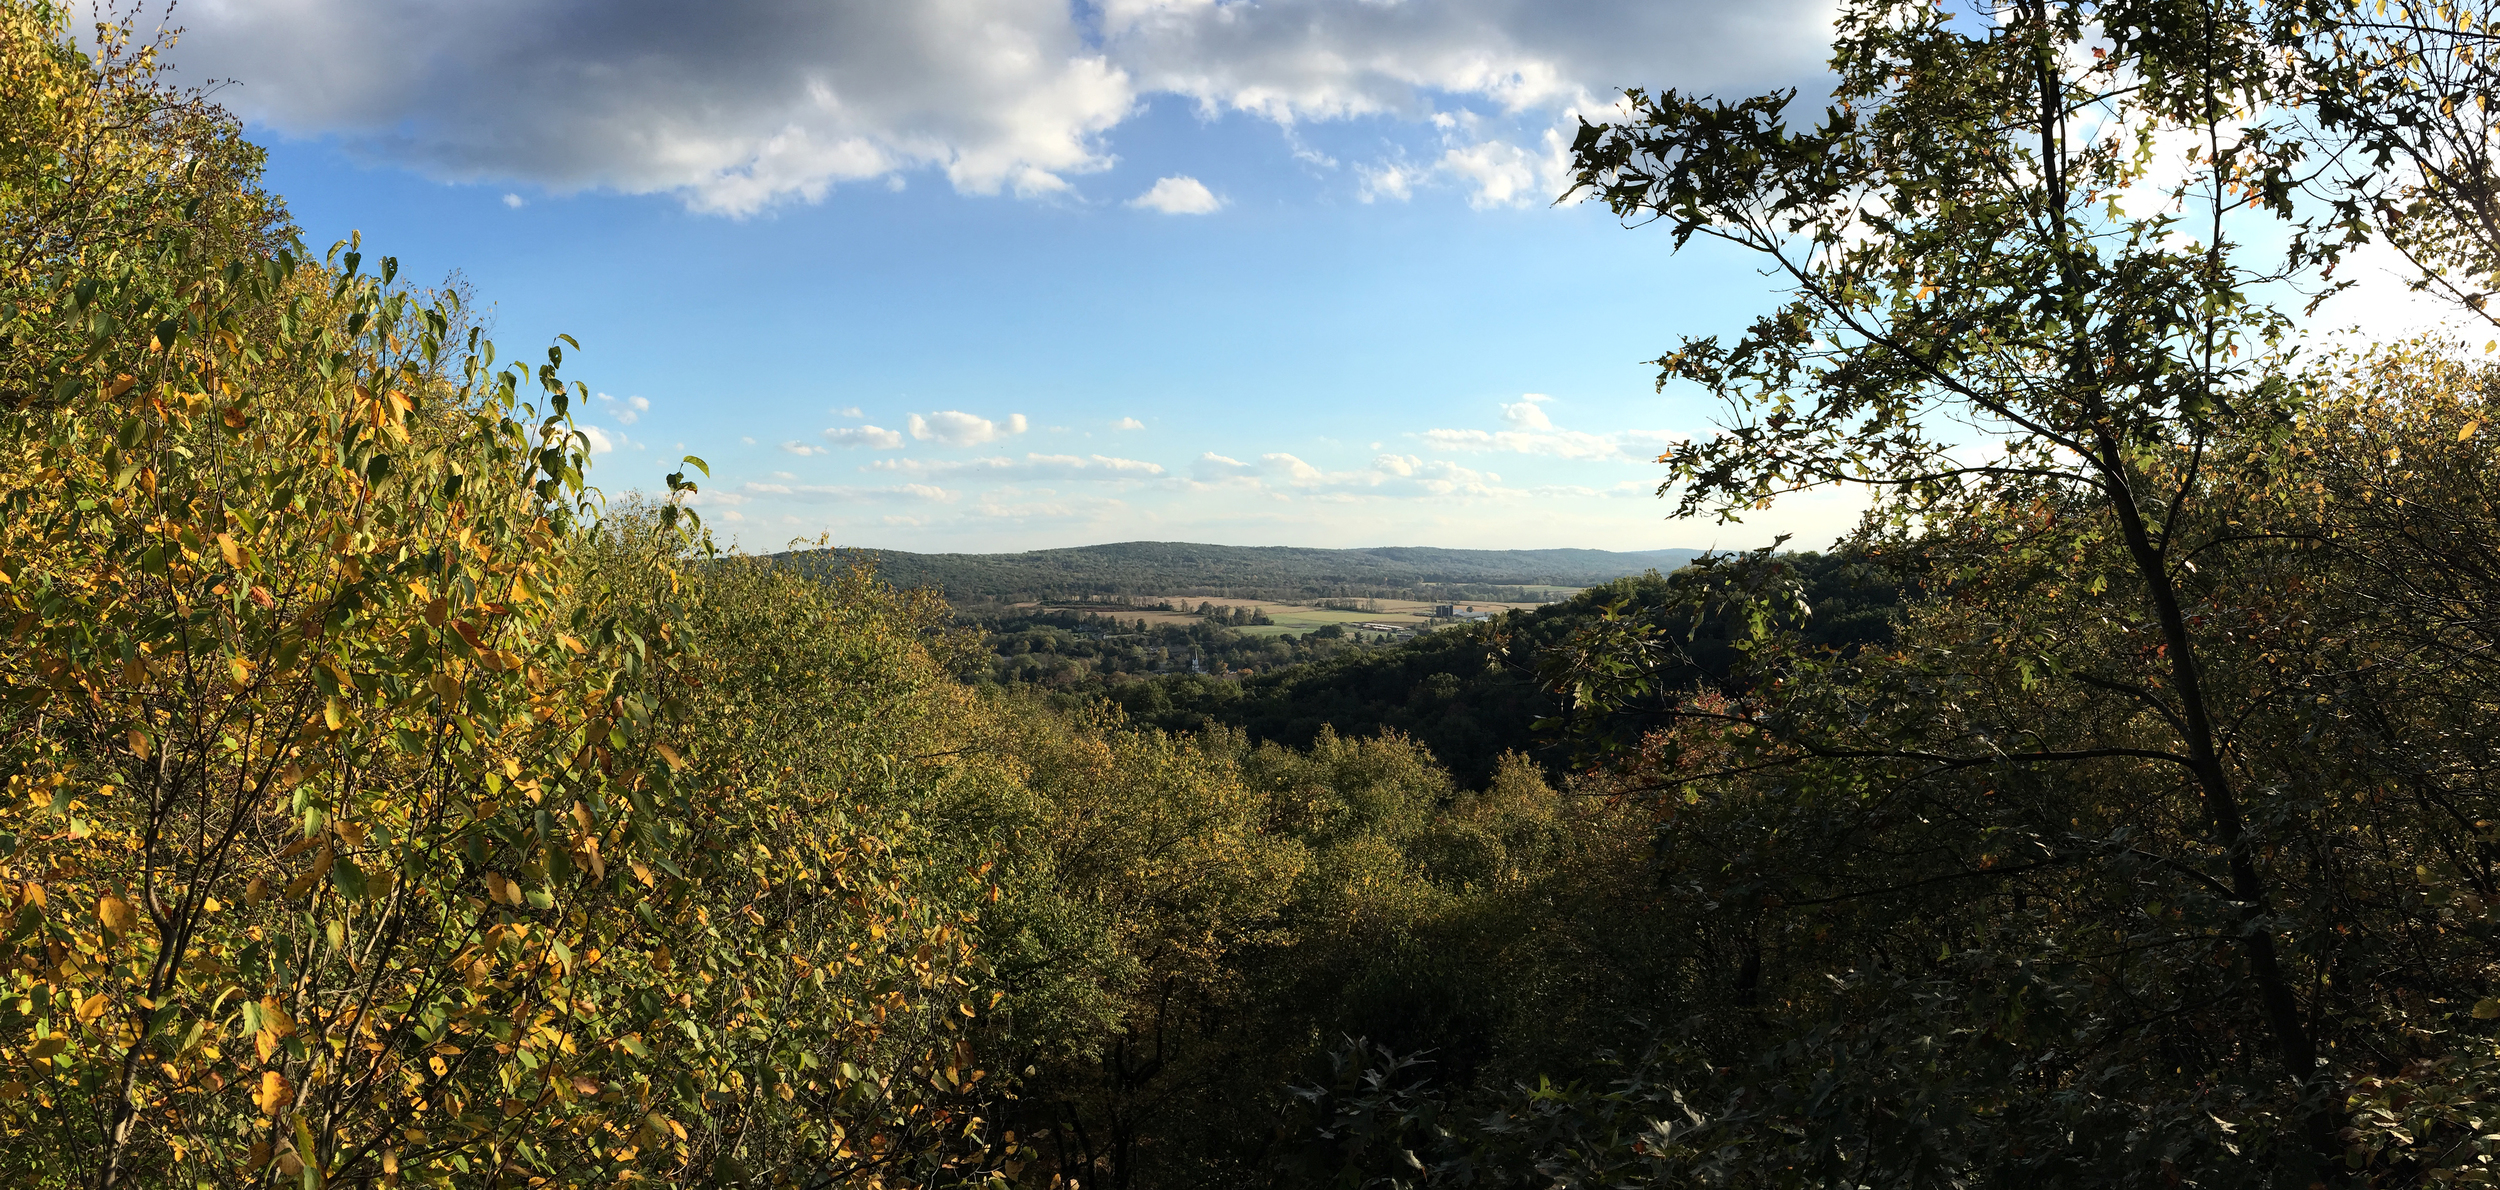 A panoramic shot I took on 10/8 from the top of the mountain, overlooking miles of farmland and trees.